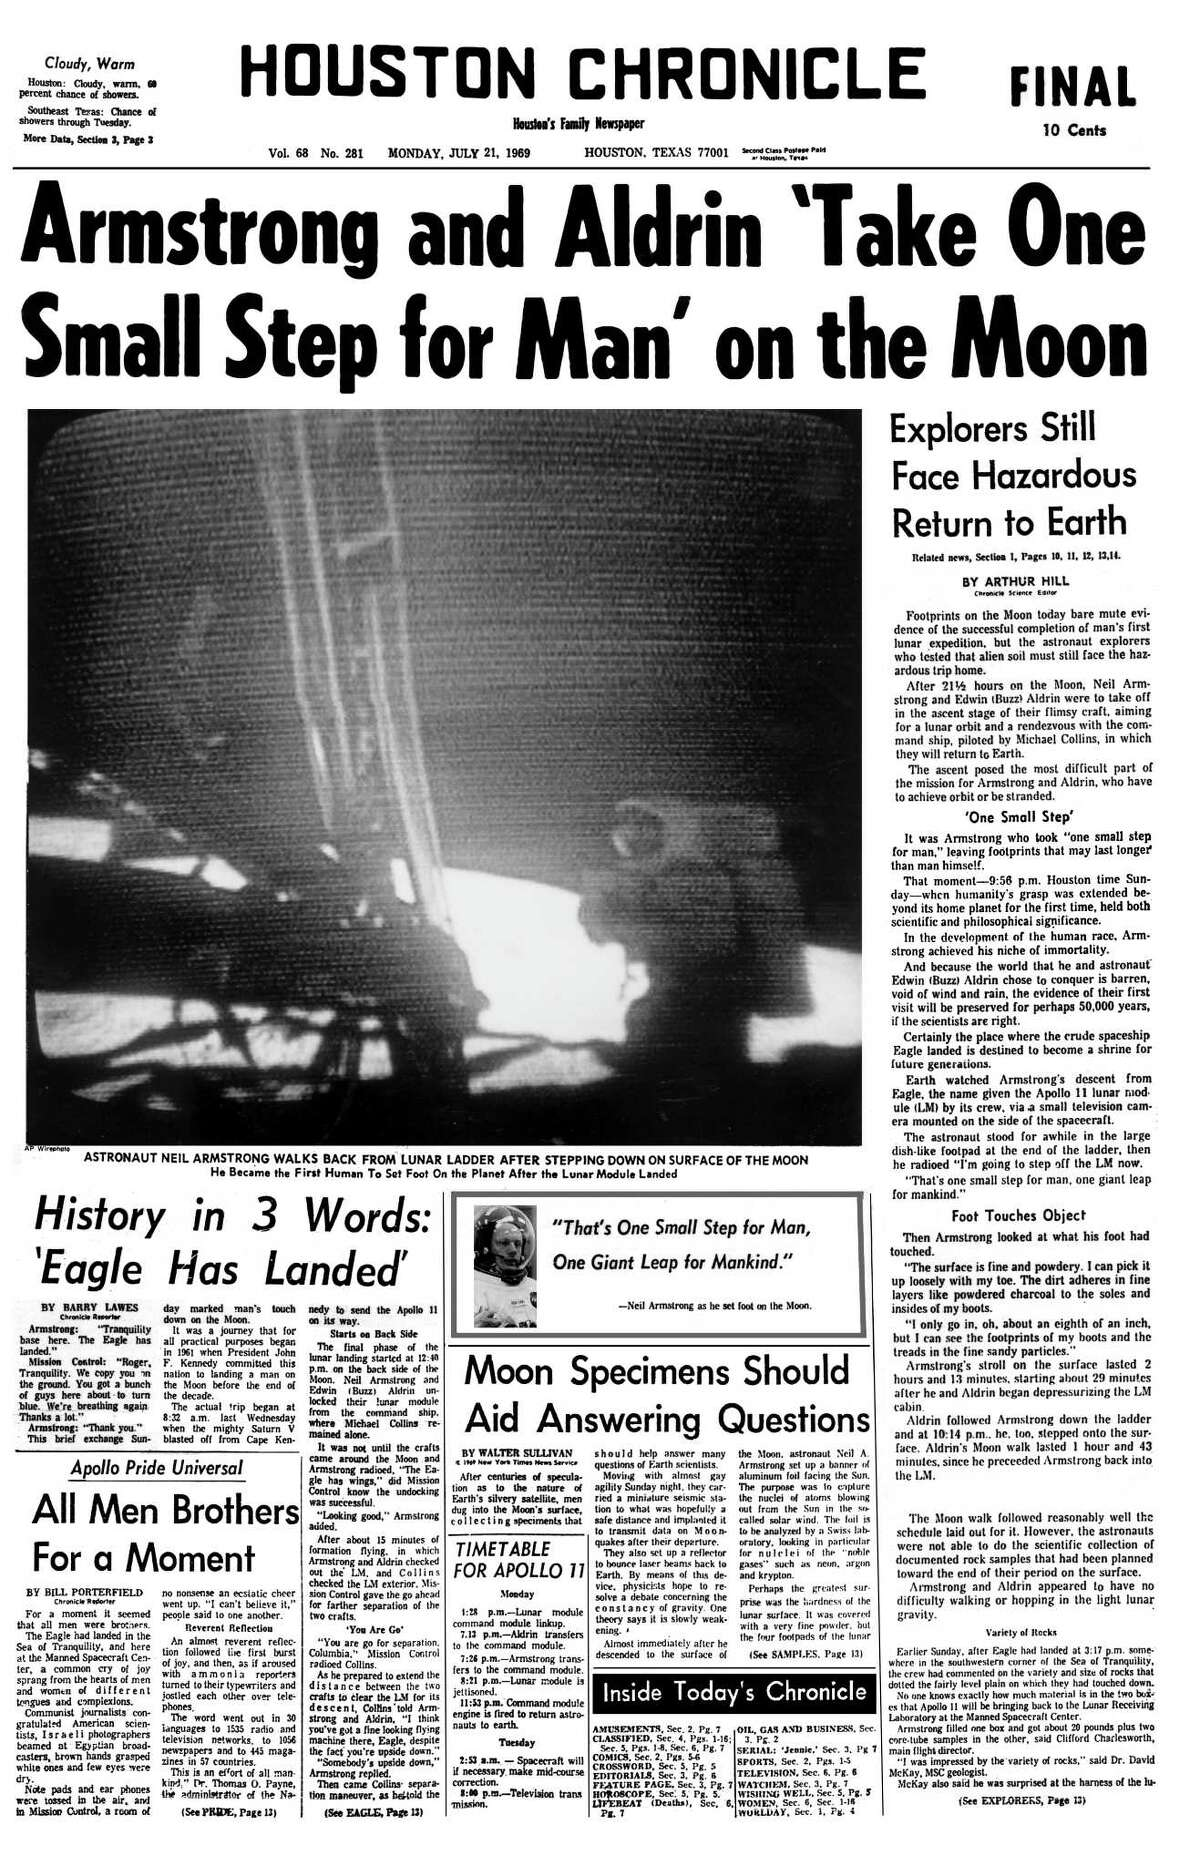 Houston Chronicle front page (HISTORIC) -- July 21, 1969 (FINAL EDITION, first Moon landing) -- Armstrong and Aldrin 'Take One Small Step for Man' on the Moon.